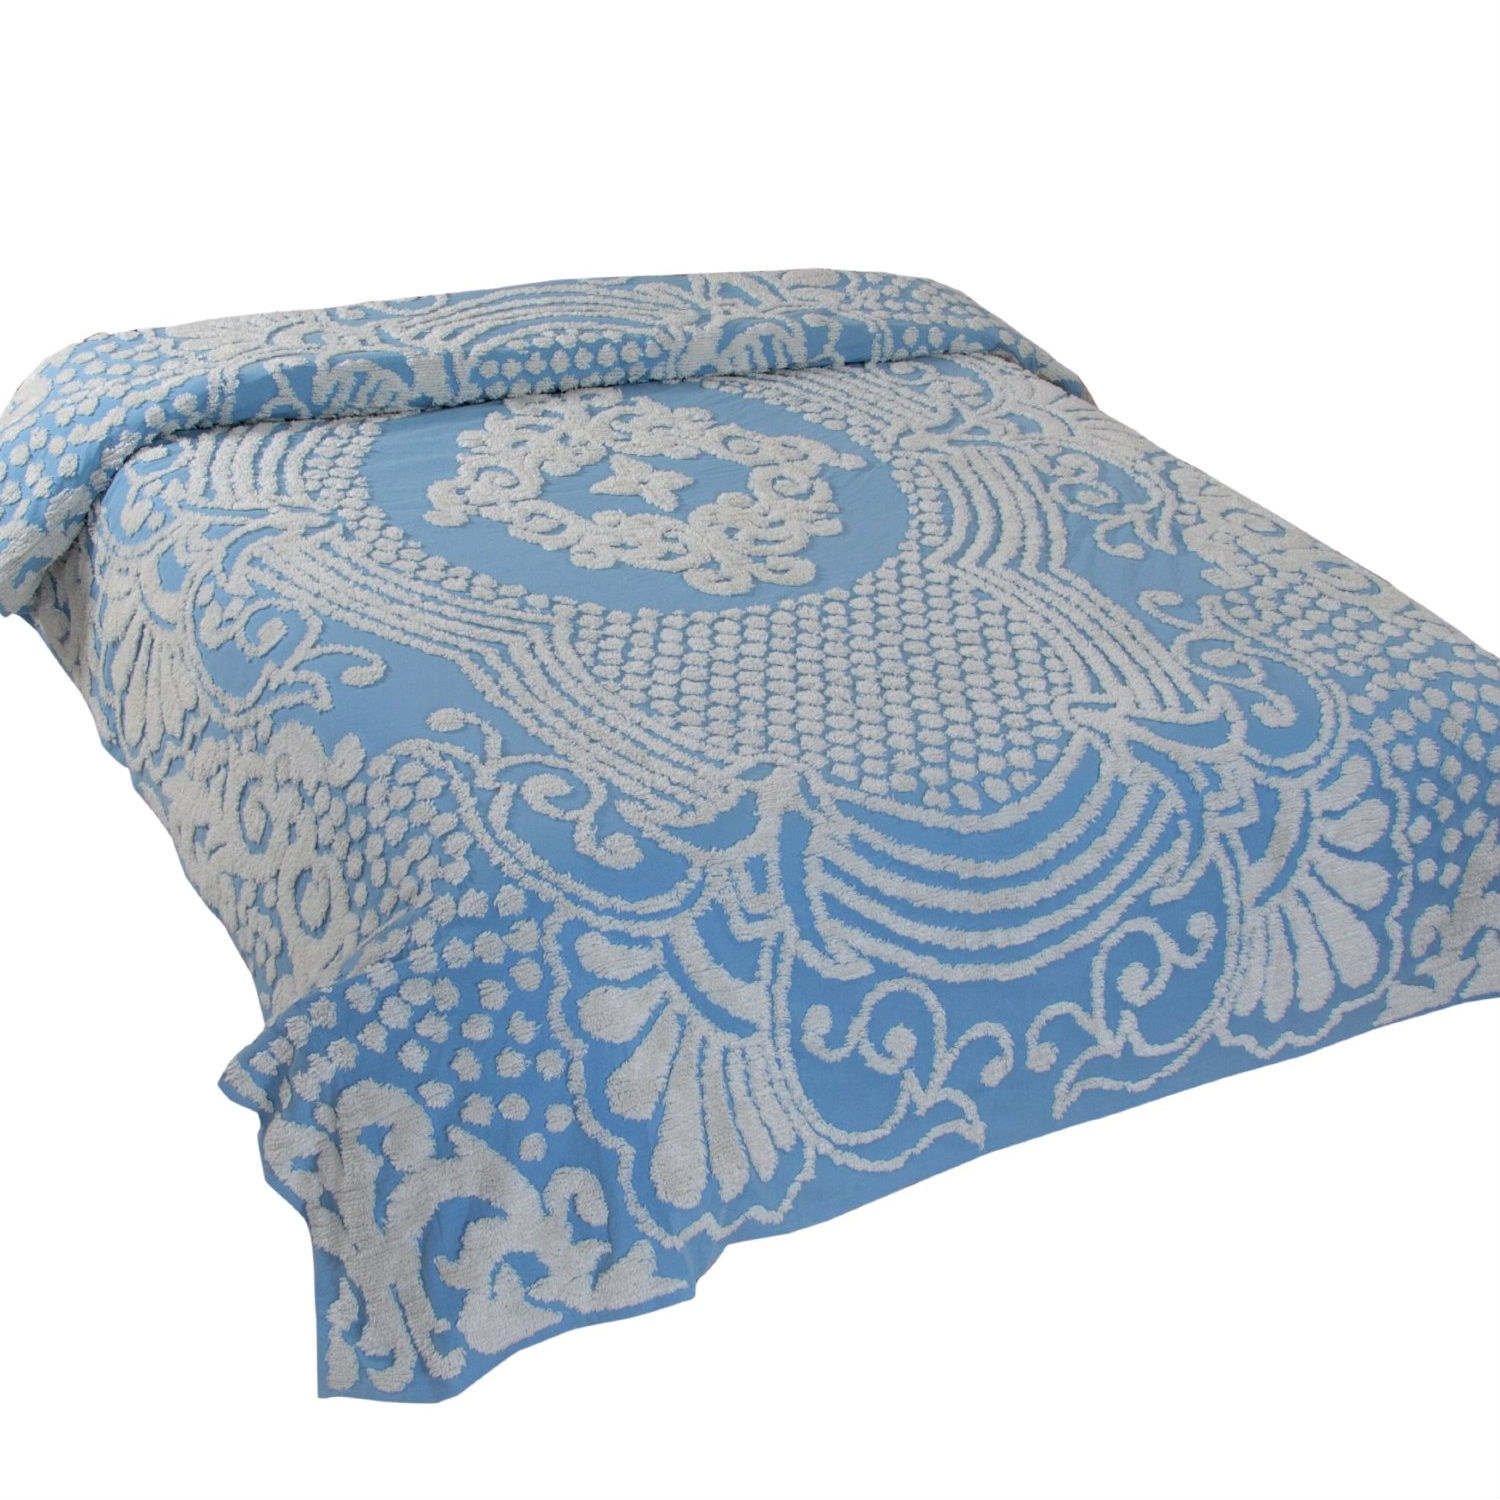 This Queen size 100% Cotton Tufted Chenille Bedspread with Blue Damask Medallion would be a great addition to your home. It is a lovely shabby chic accent to any bedroom. The bedspread comes all the way to the floor with its full cut drop. The sizes are overcut as the twin is 81x110 Inch, the full is 96x110 Inch, the queen is 102x110 Inch, the king is 120x110 Inch. The bedspread comes in 3 colors that can coordinate and work in any bedroom. The colors include blue, sage and pink. There is also a standard sham 21x27 with a 2 inch flange in all 3 colors to coordinate with the bedspreads and are sold separately.